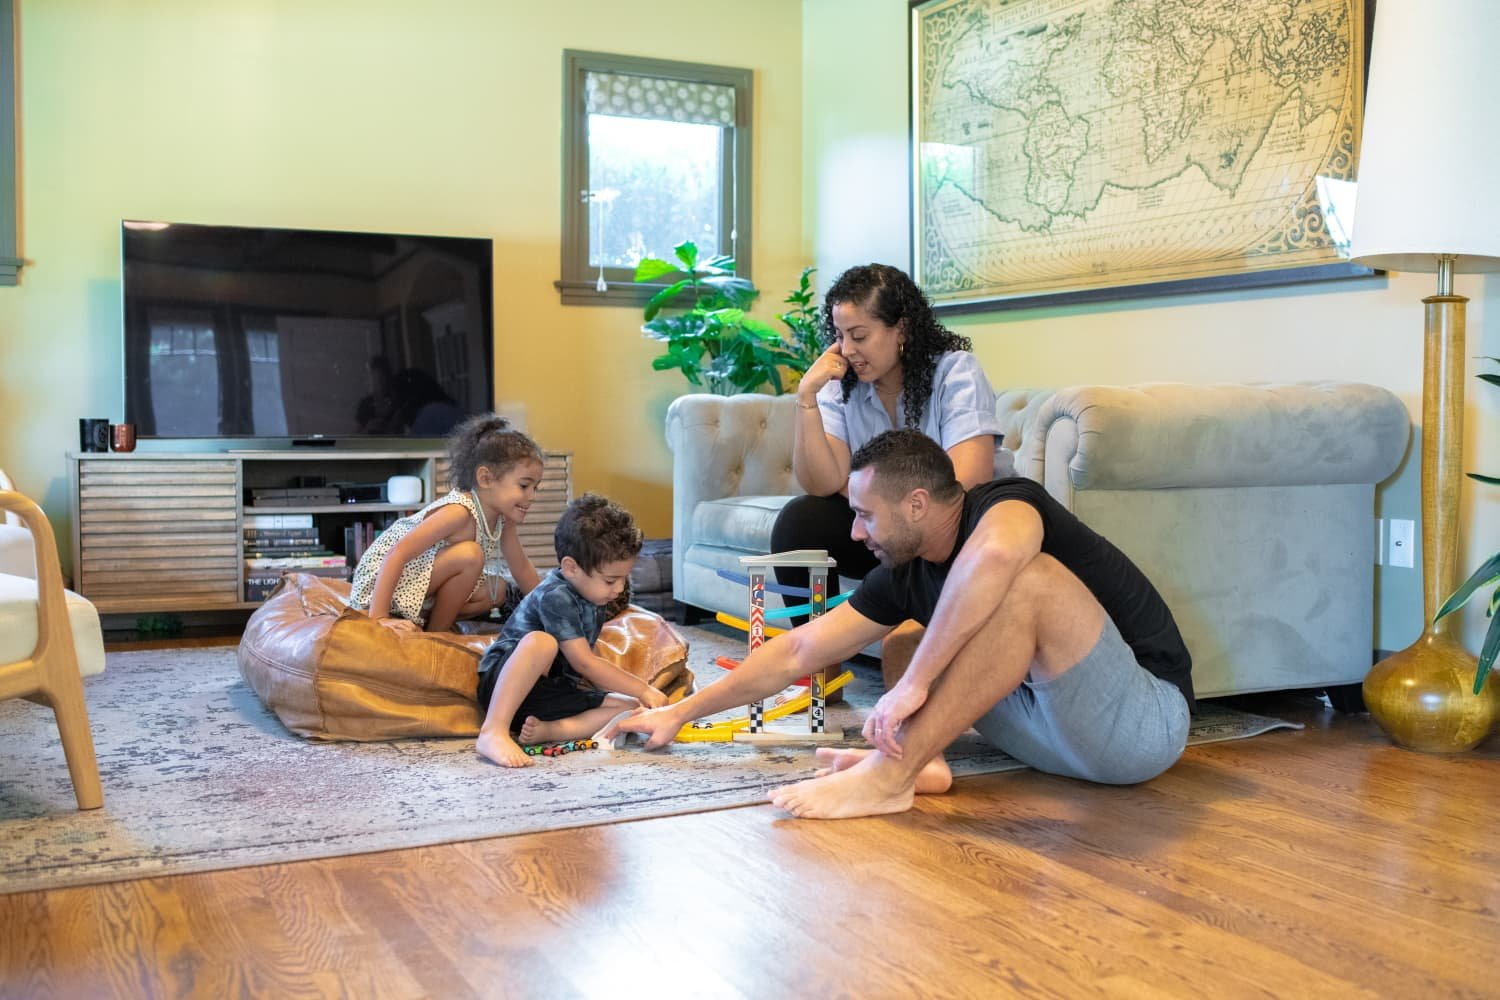 An Epidemiologist and Her Family Made a Temporary Home in a 1,600-Square-Foot Craftsman Bungalow